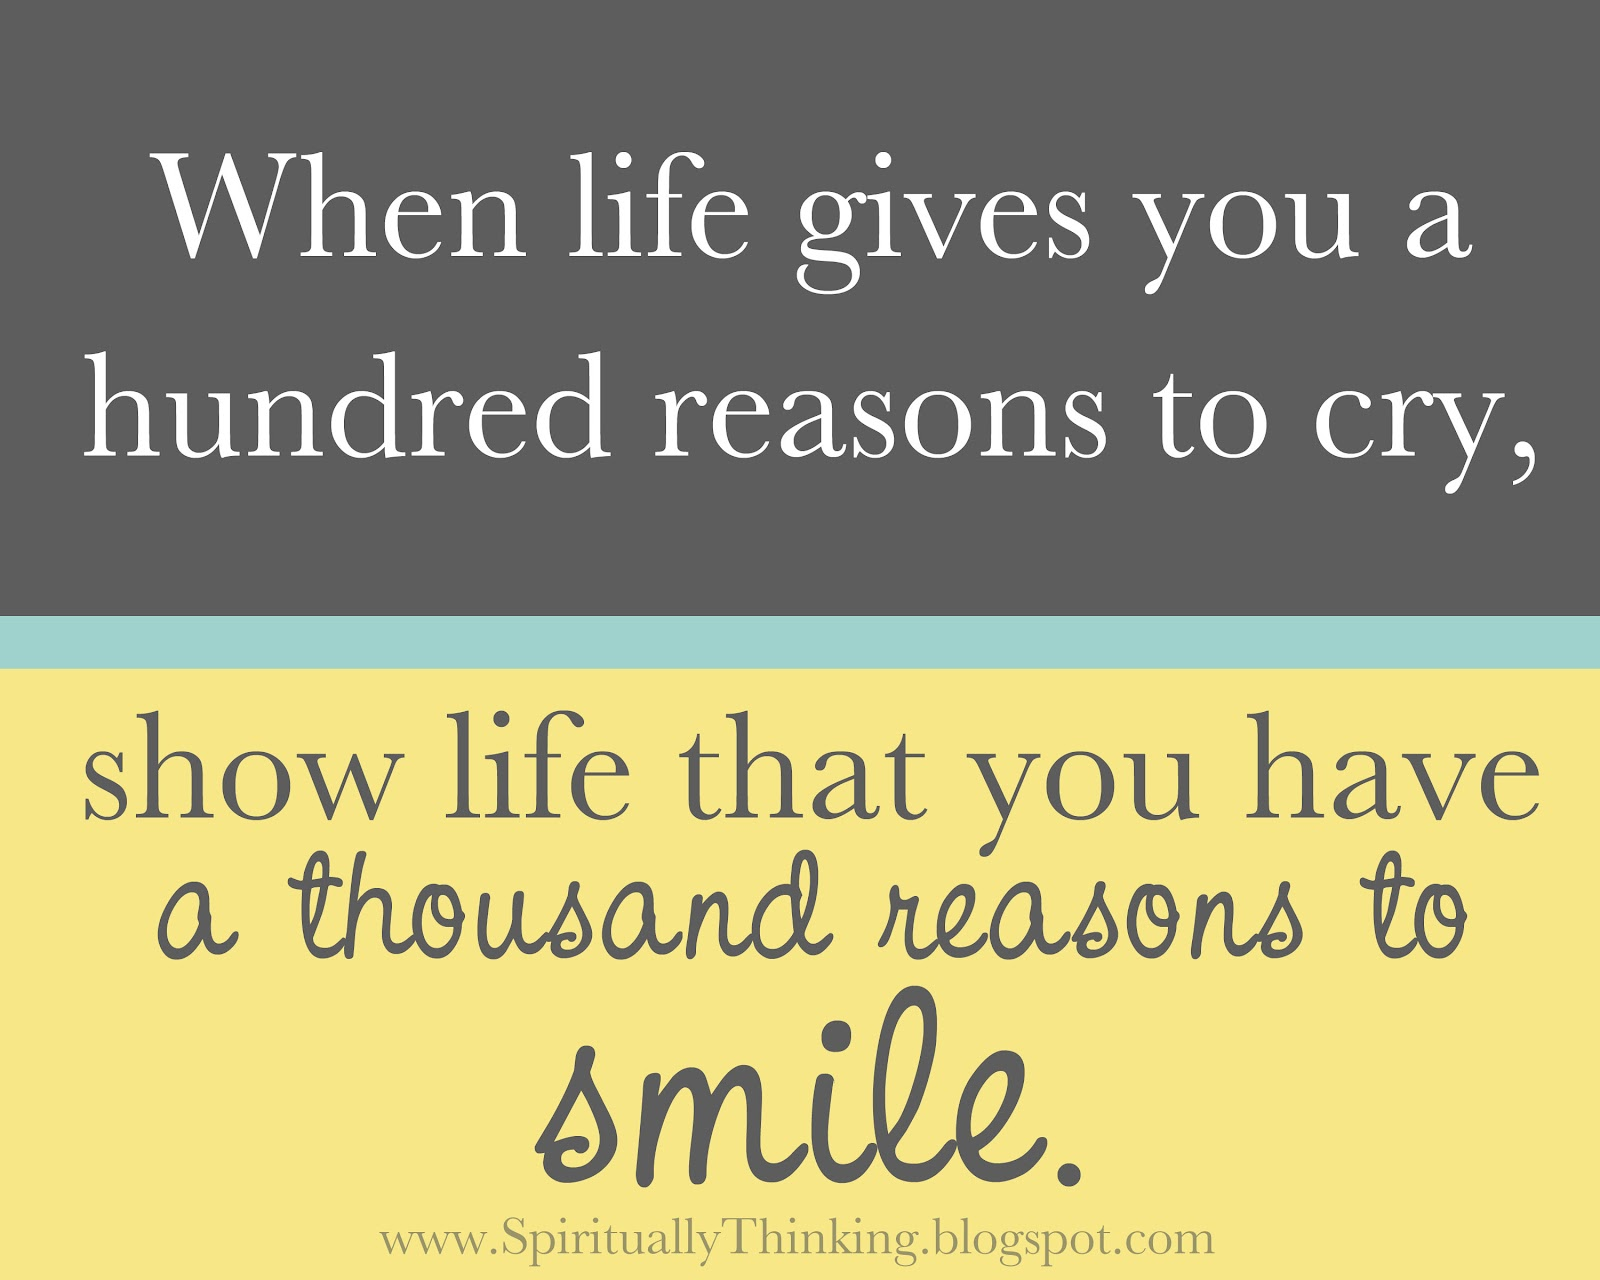 I Have Every Reason To Smile Quotes: Quotes About Smiling Through The Hard Times. QuotesGram